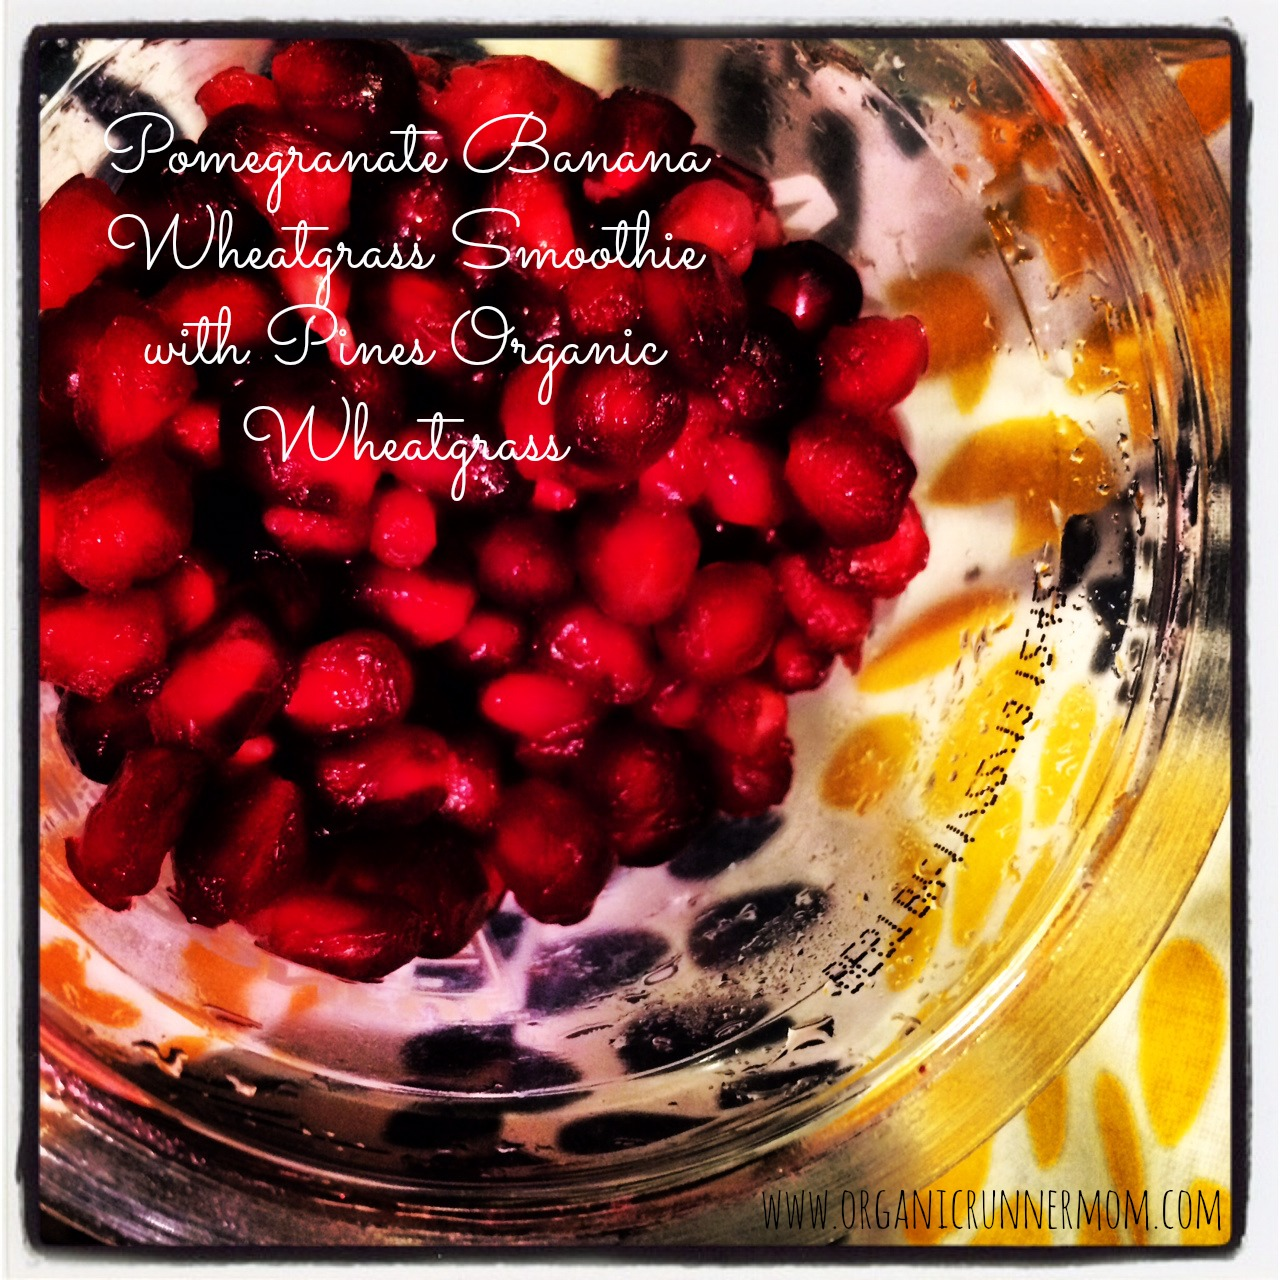 #Sponsored Fresh Recipe: Pomegranate Banana Wheatgrass Smoothie with Pines Organic Wheatgrass